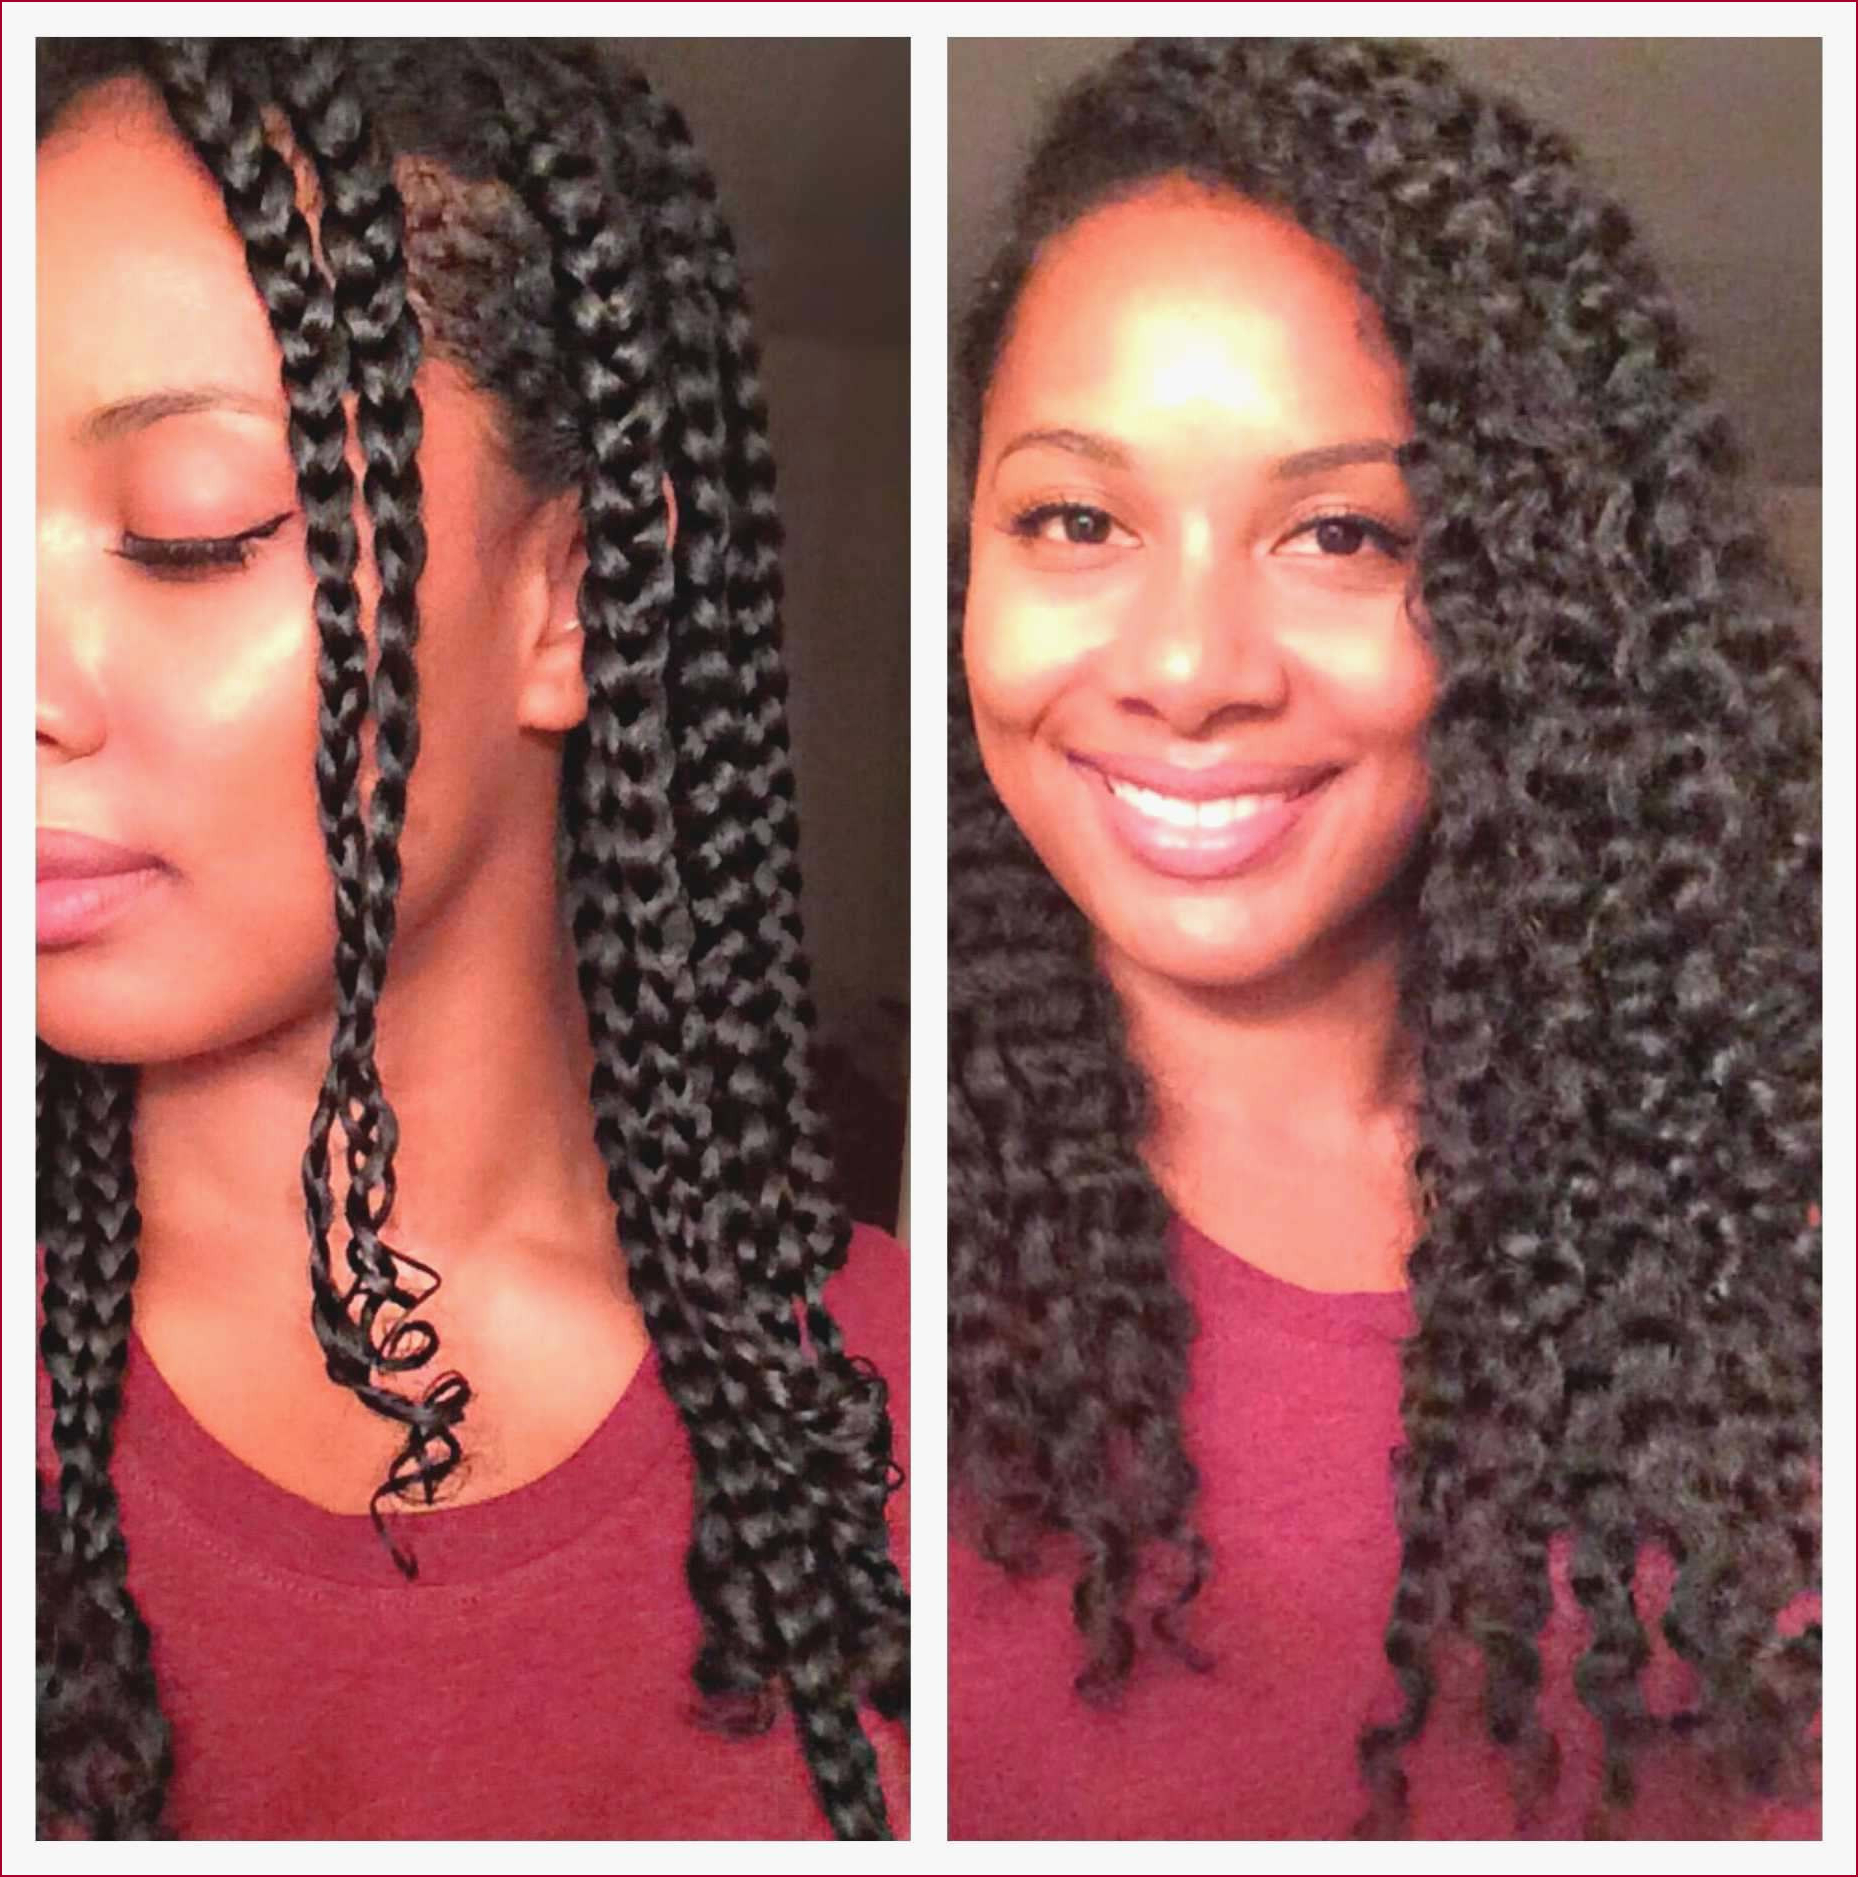 Micro Braids Hairstyles Wavy Micro Braids Archives Getinlope Regarding Most Up To Date Micro Braid Hairstyles With Curls (View 14 of 20)